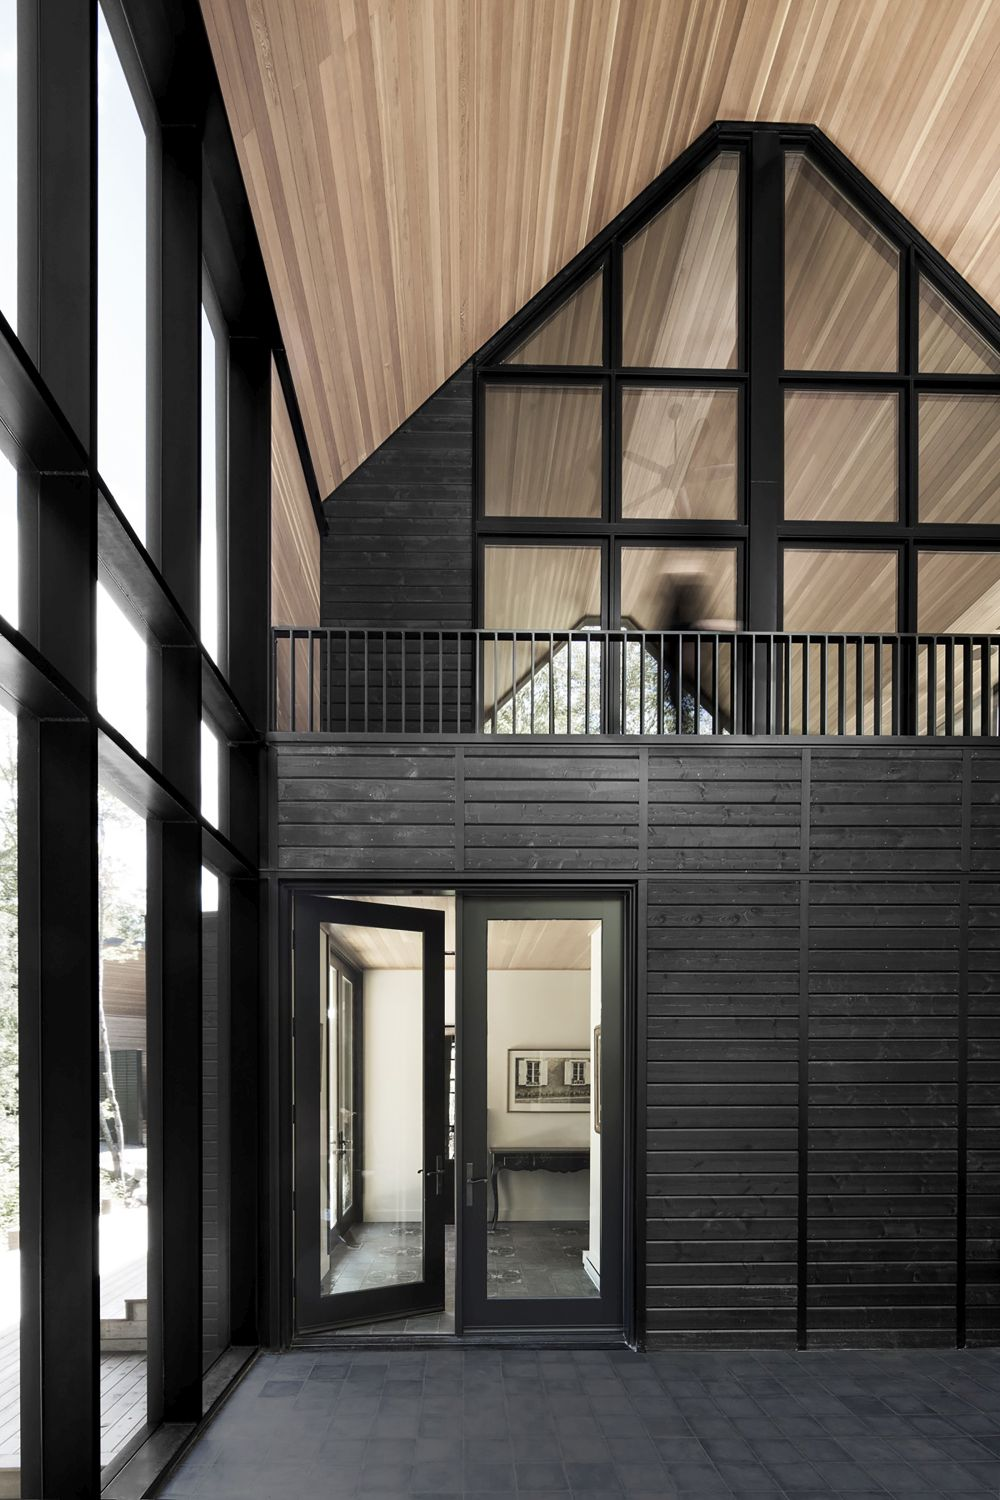 1556785098 125 houses with black cladding that are in harmony with their surroundings - Houses With Black Cladding That Are in Harmony With their Surroundings